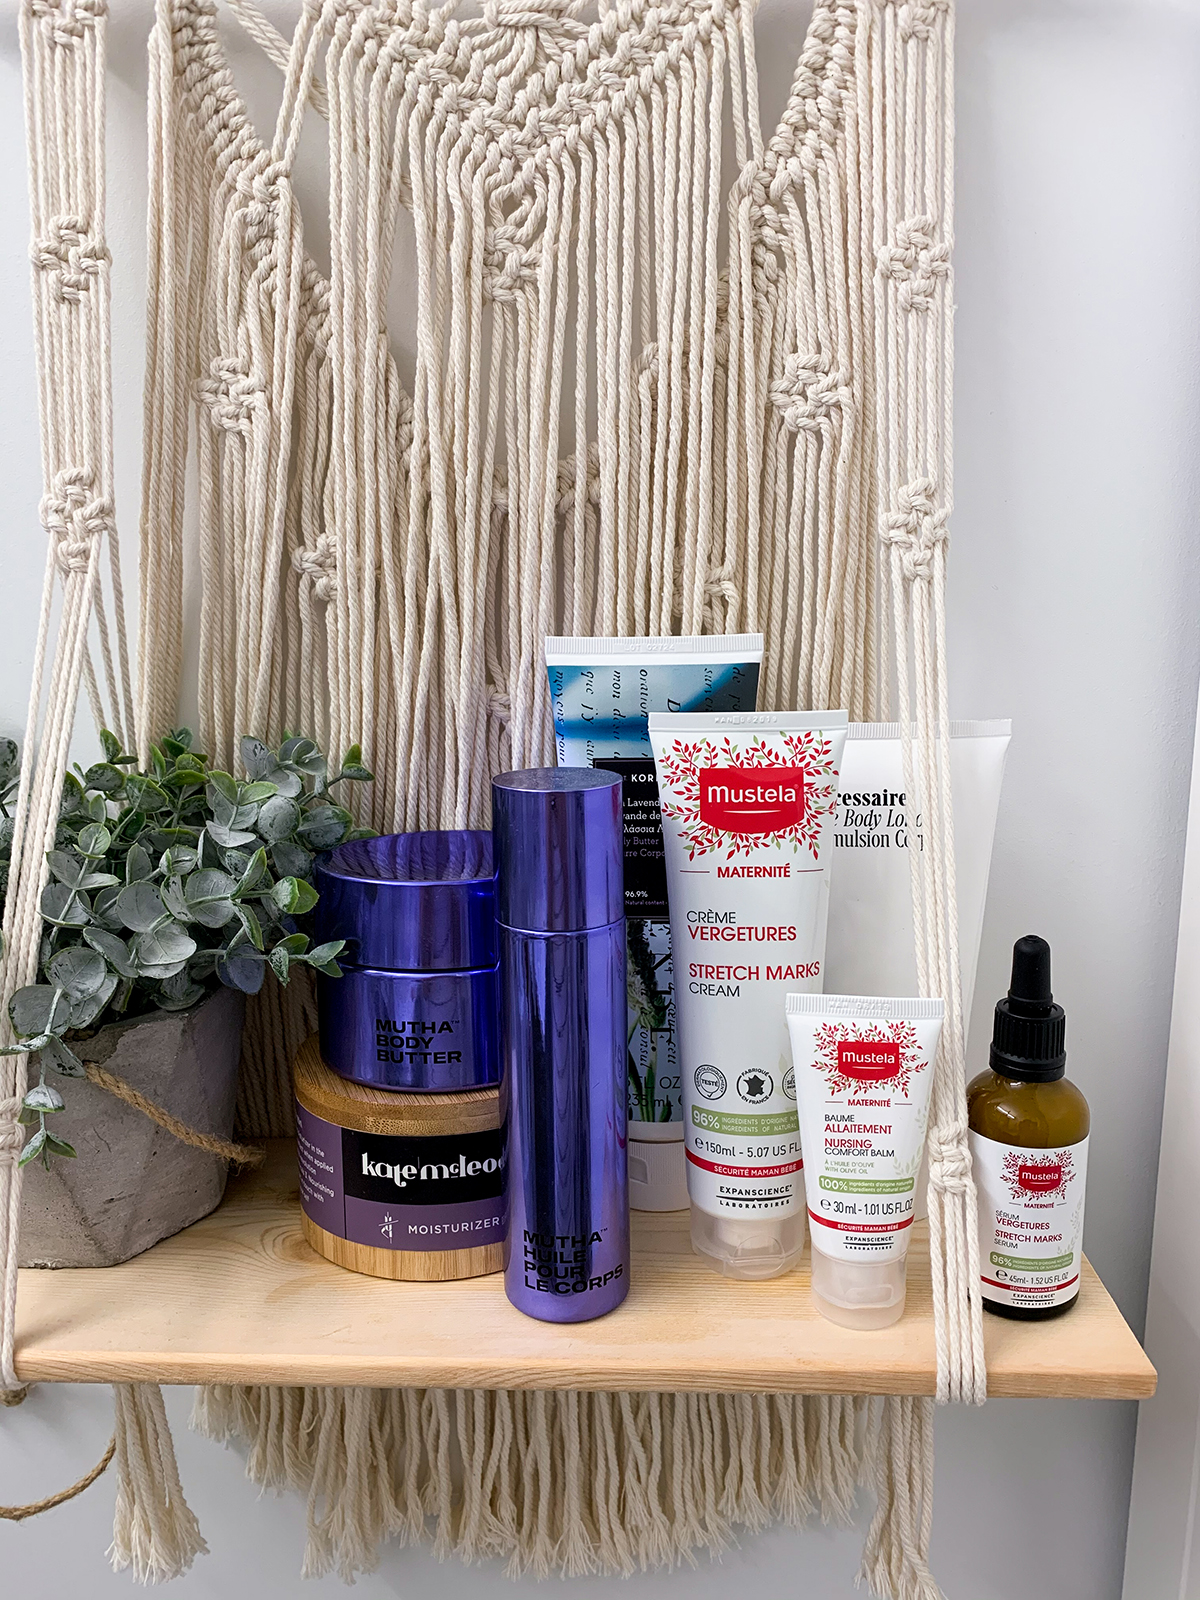 Katies Bliss Stretch Mark and Moisturizing Products